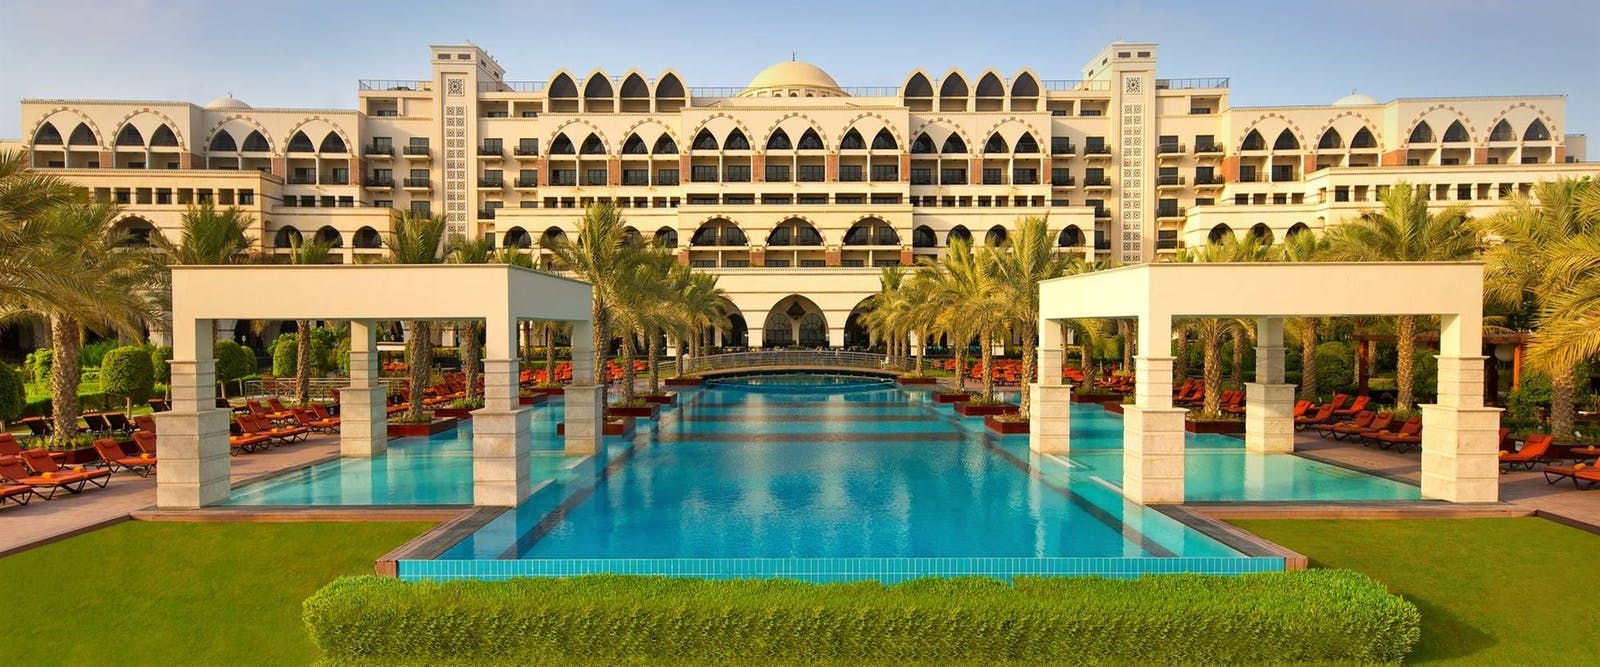 Swimming pool at Jumeirah Zabeel Saray, Dubai